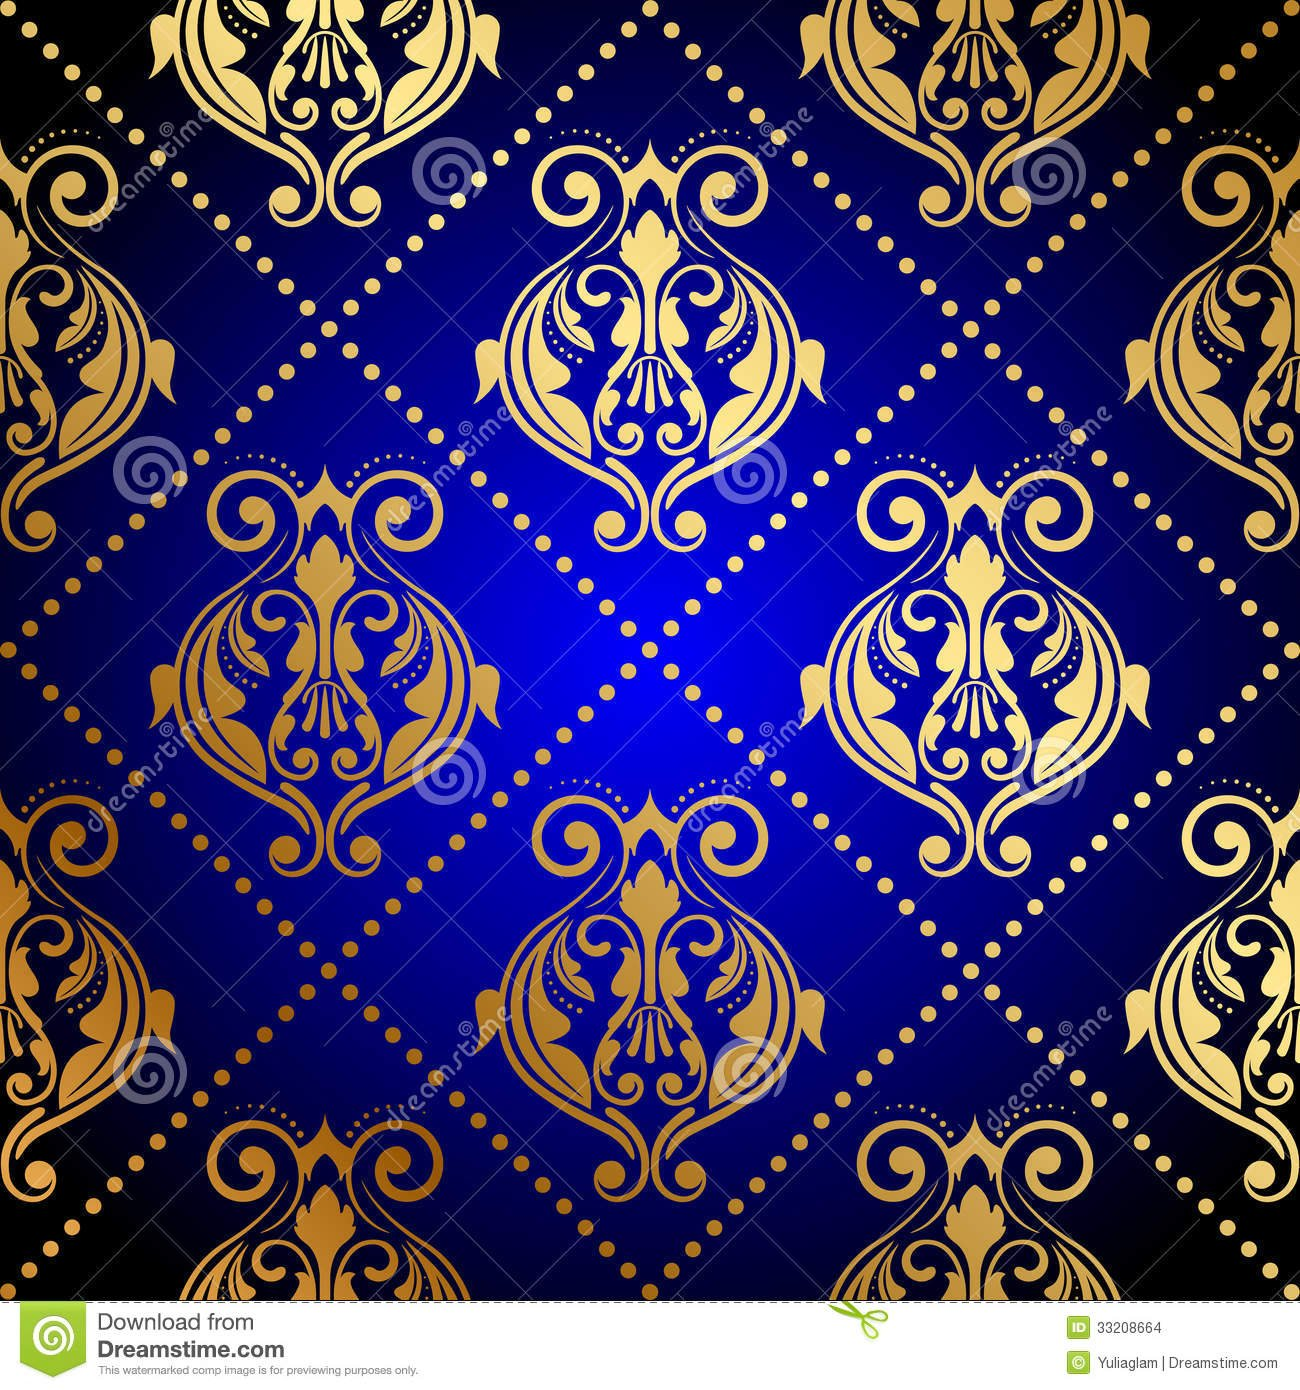 royal blue and gold wallpaper